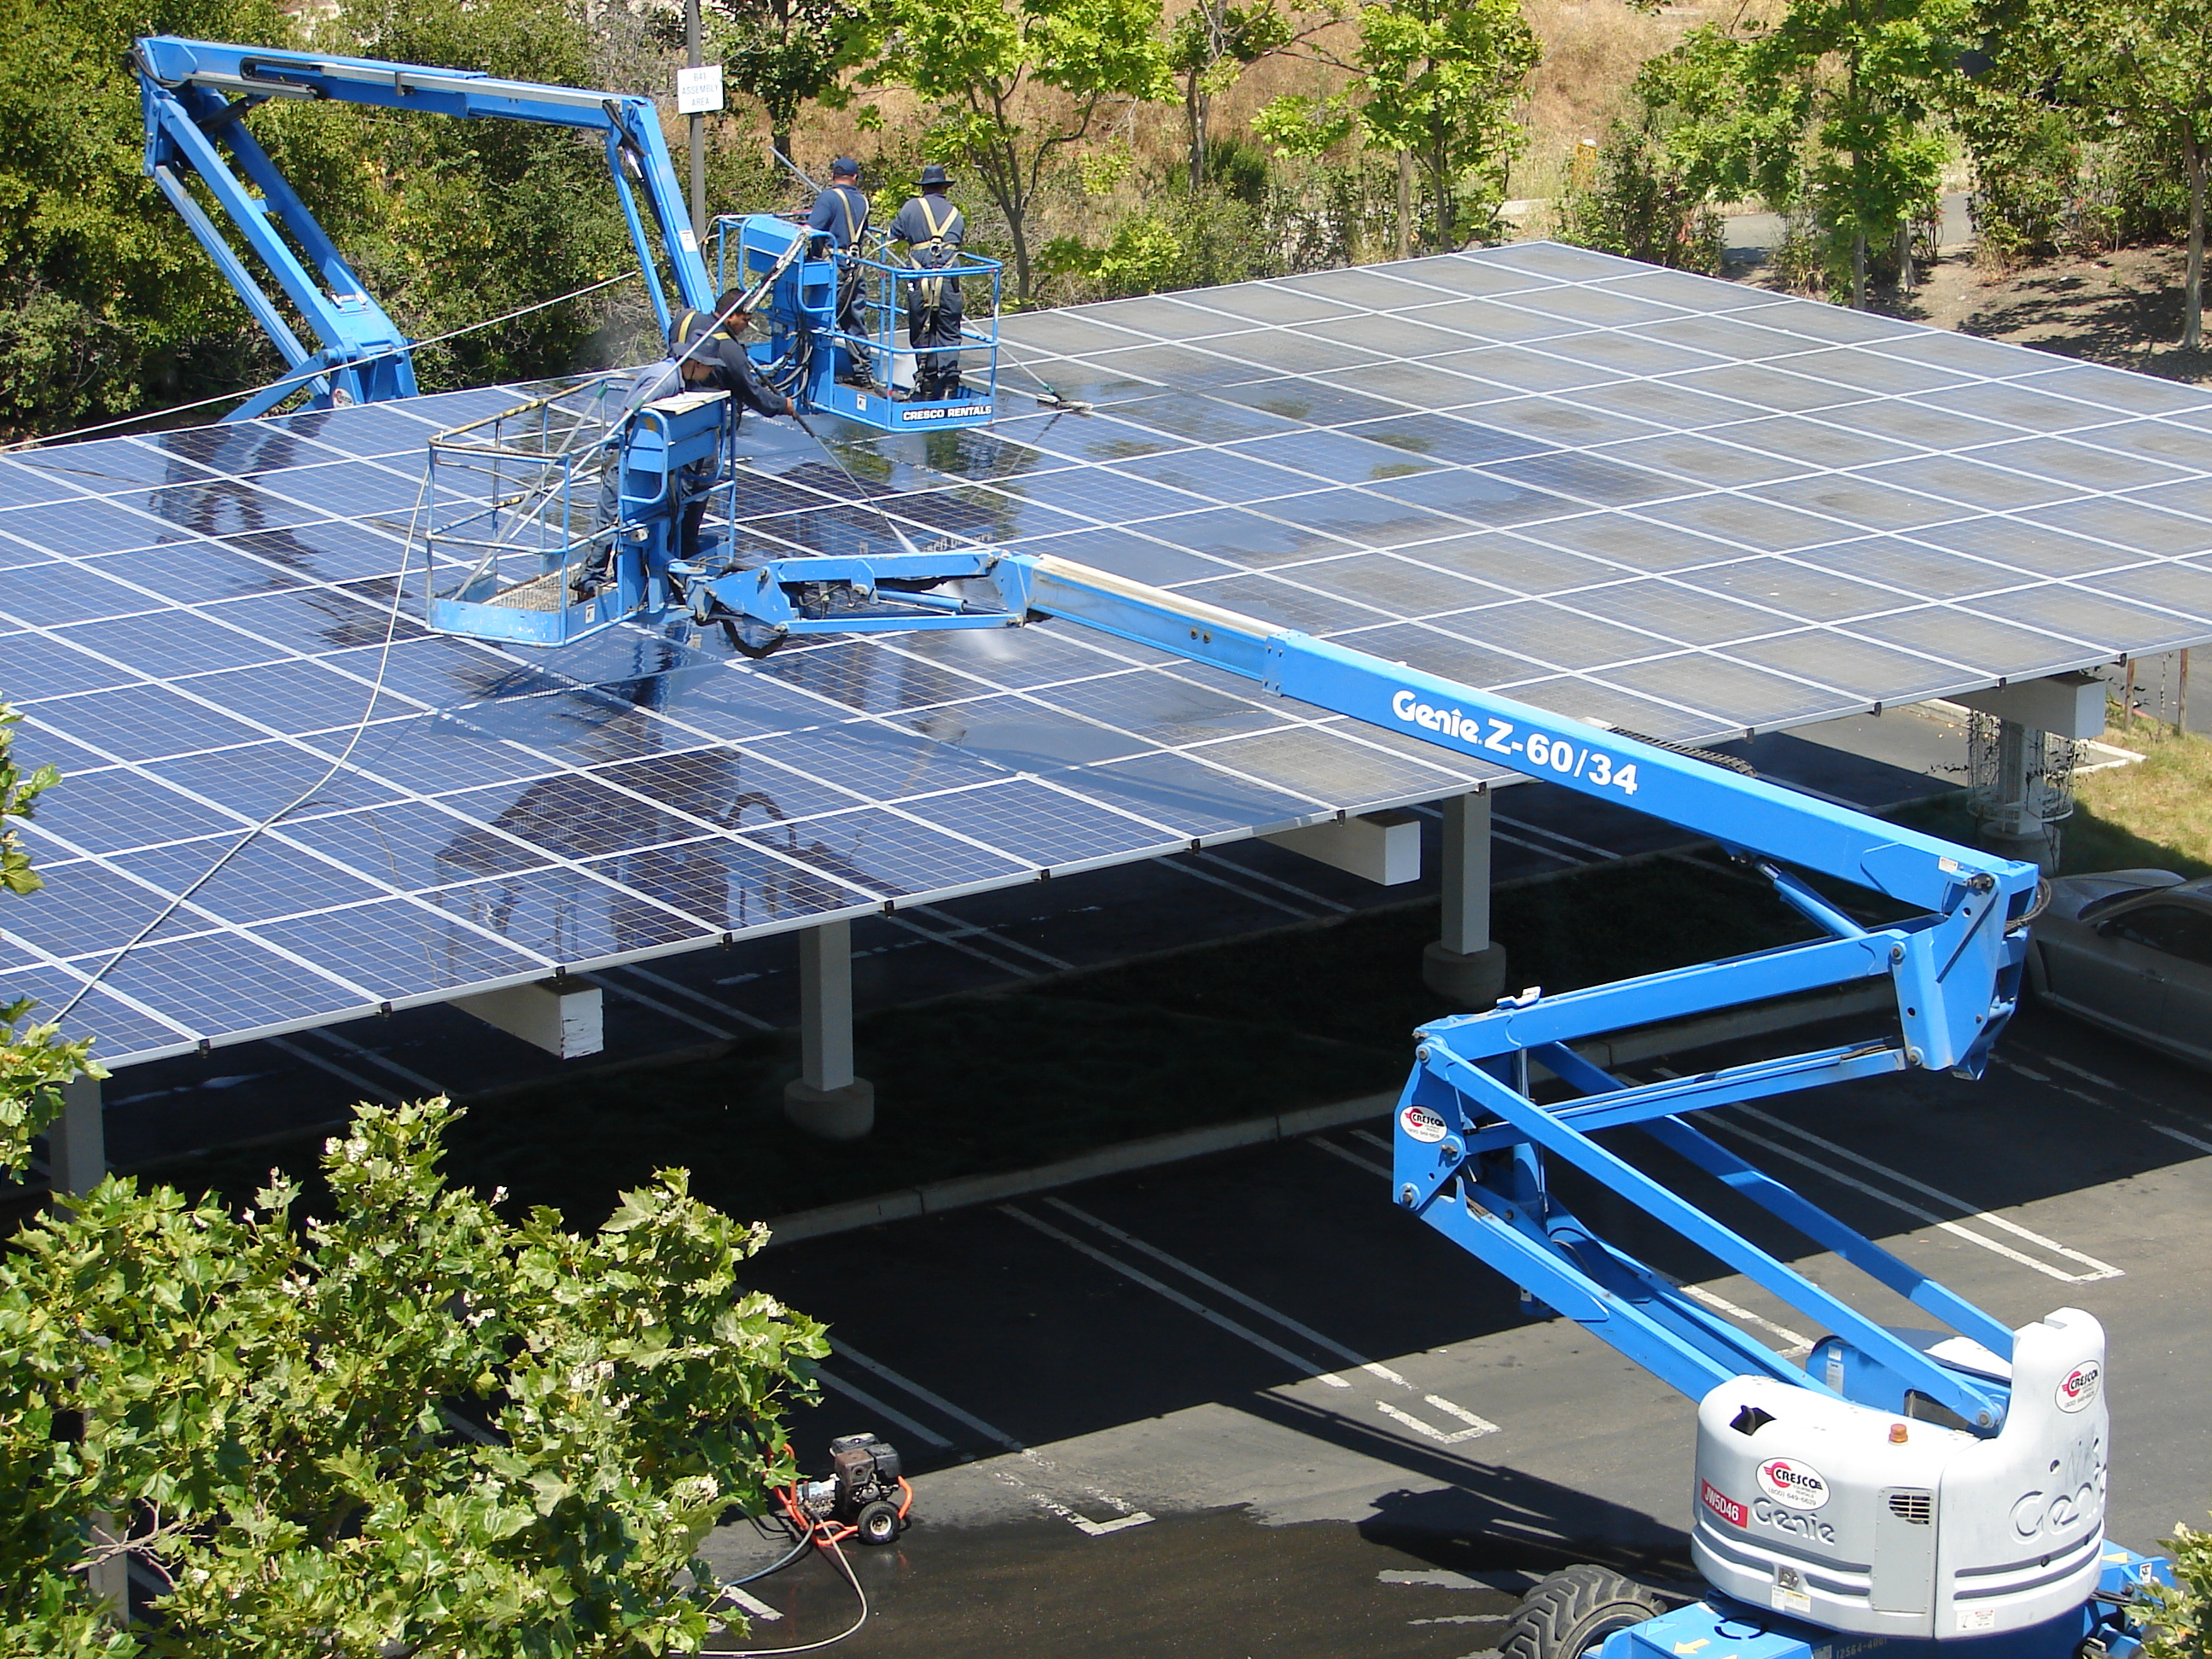 File:Googleplex Solar panels.jpg - Wikimedia Commons